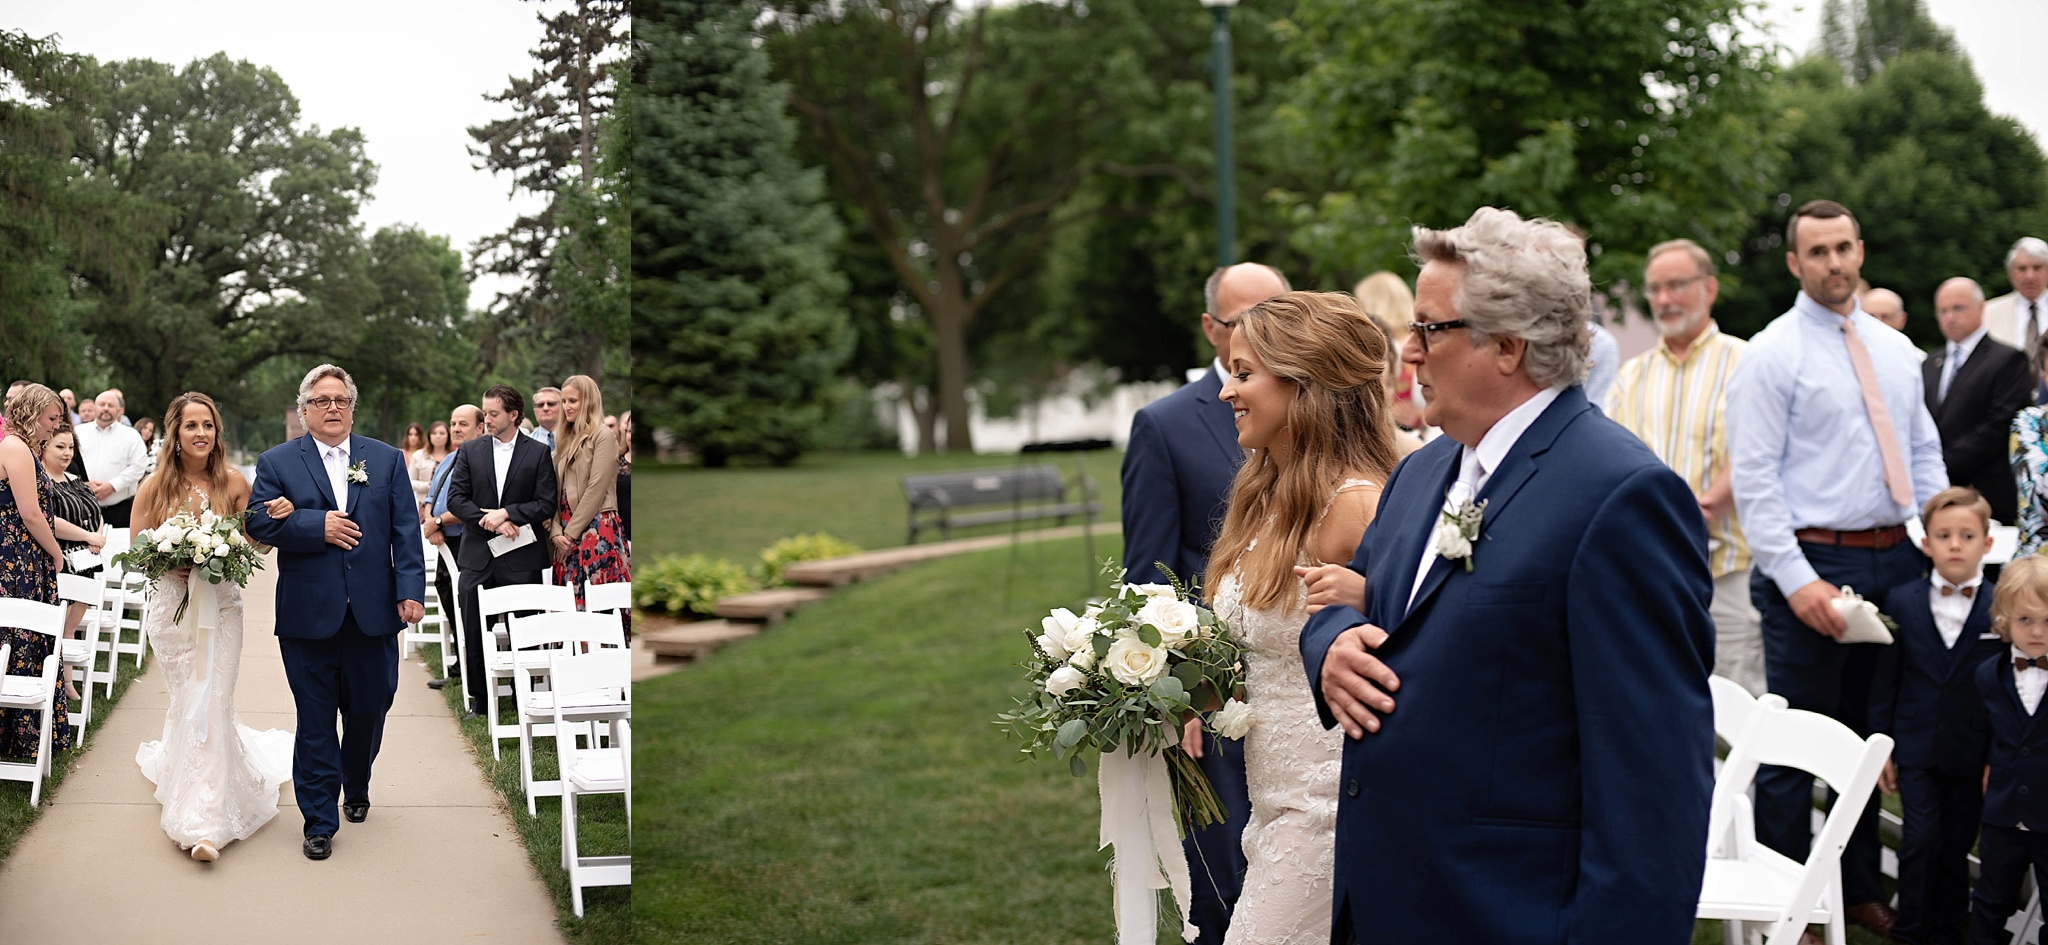 father of the bride walks the bride down the aisle in garden wedding